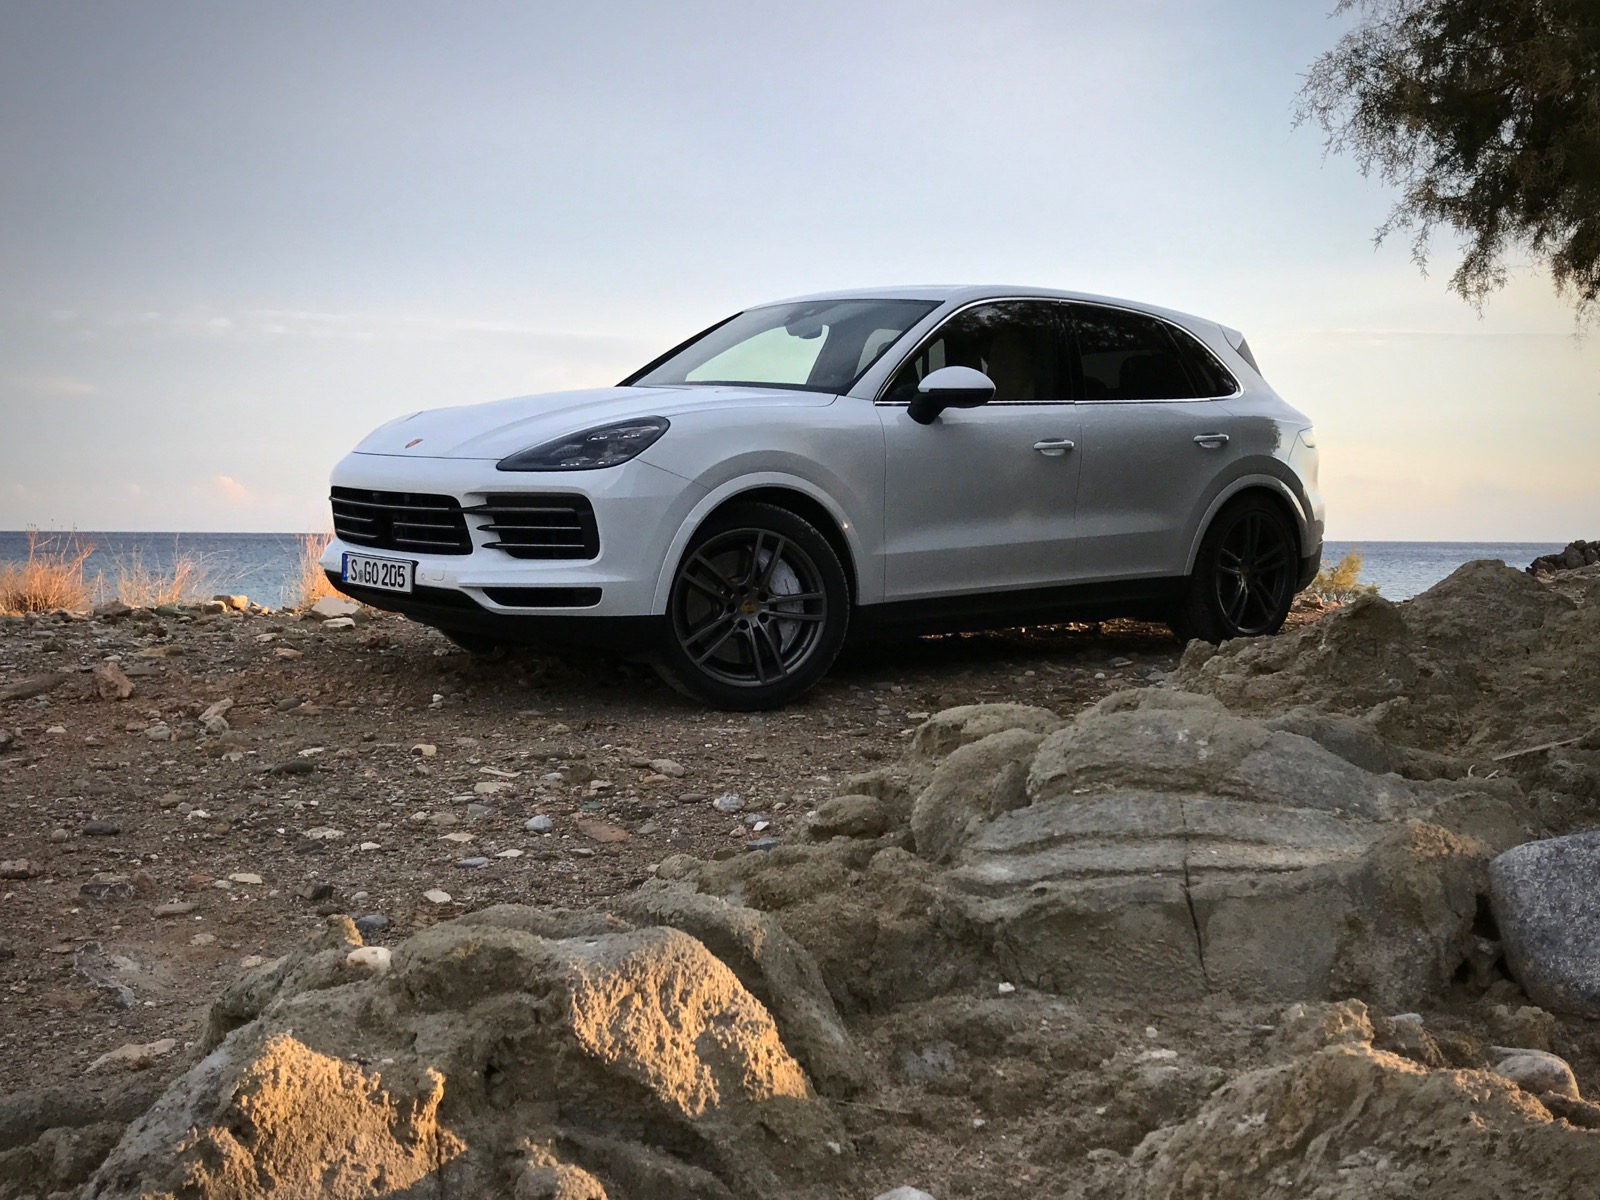 Business as usual: Porsche Cayenne